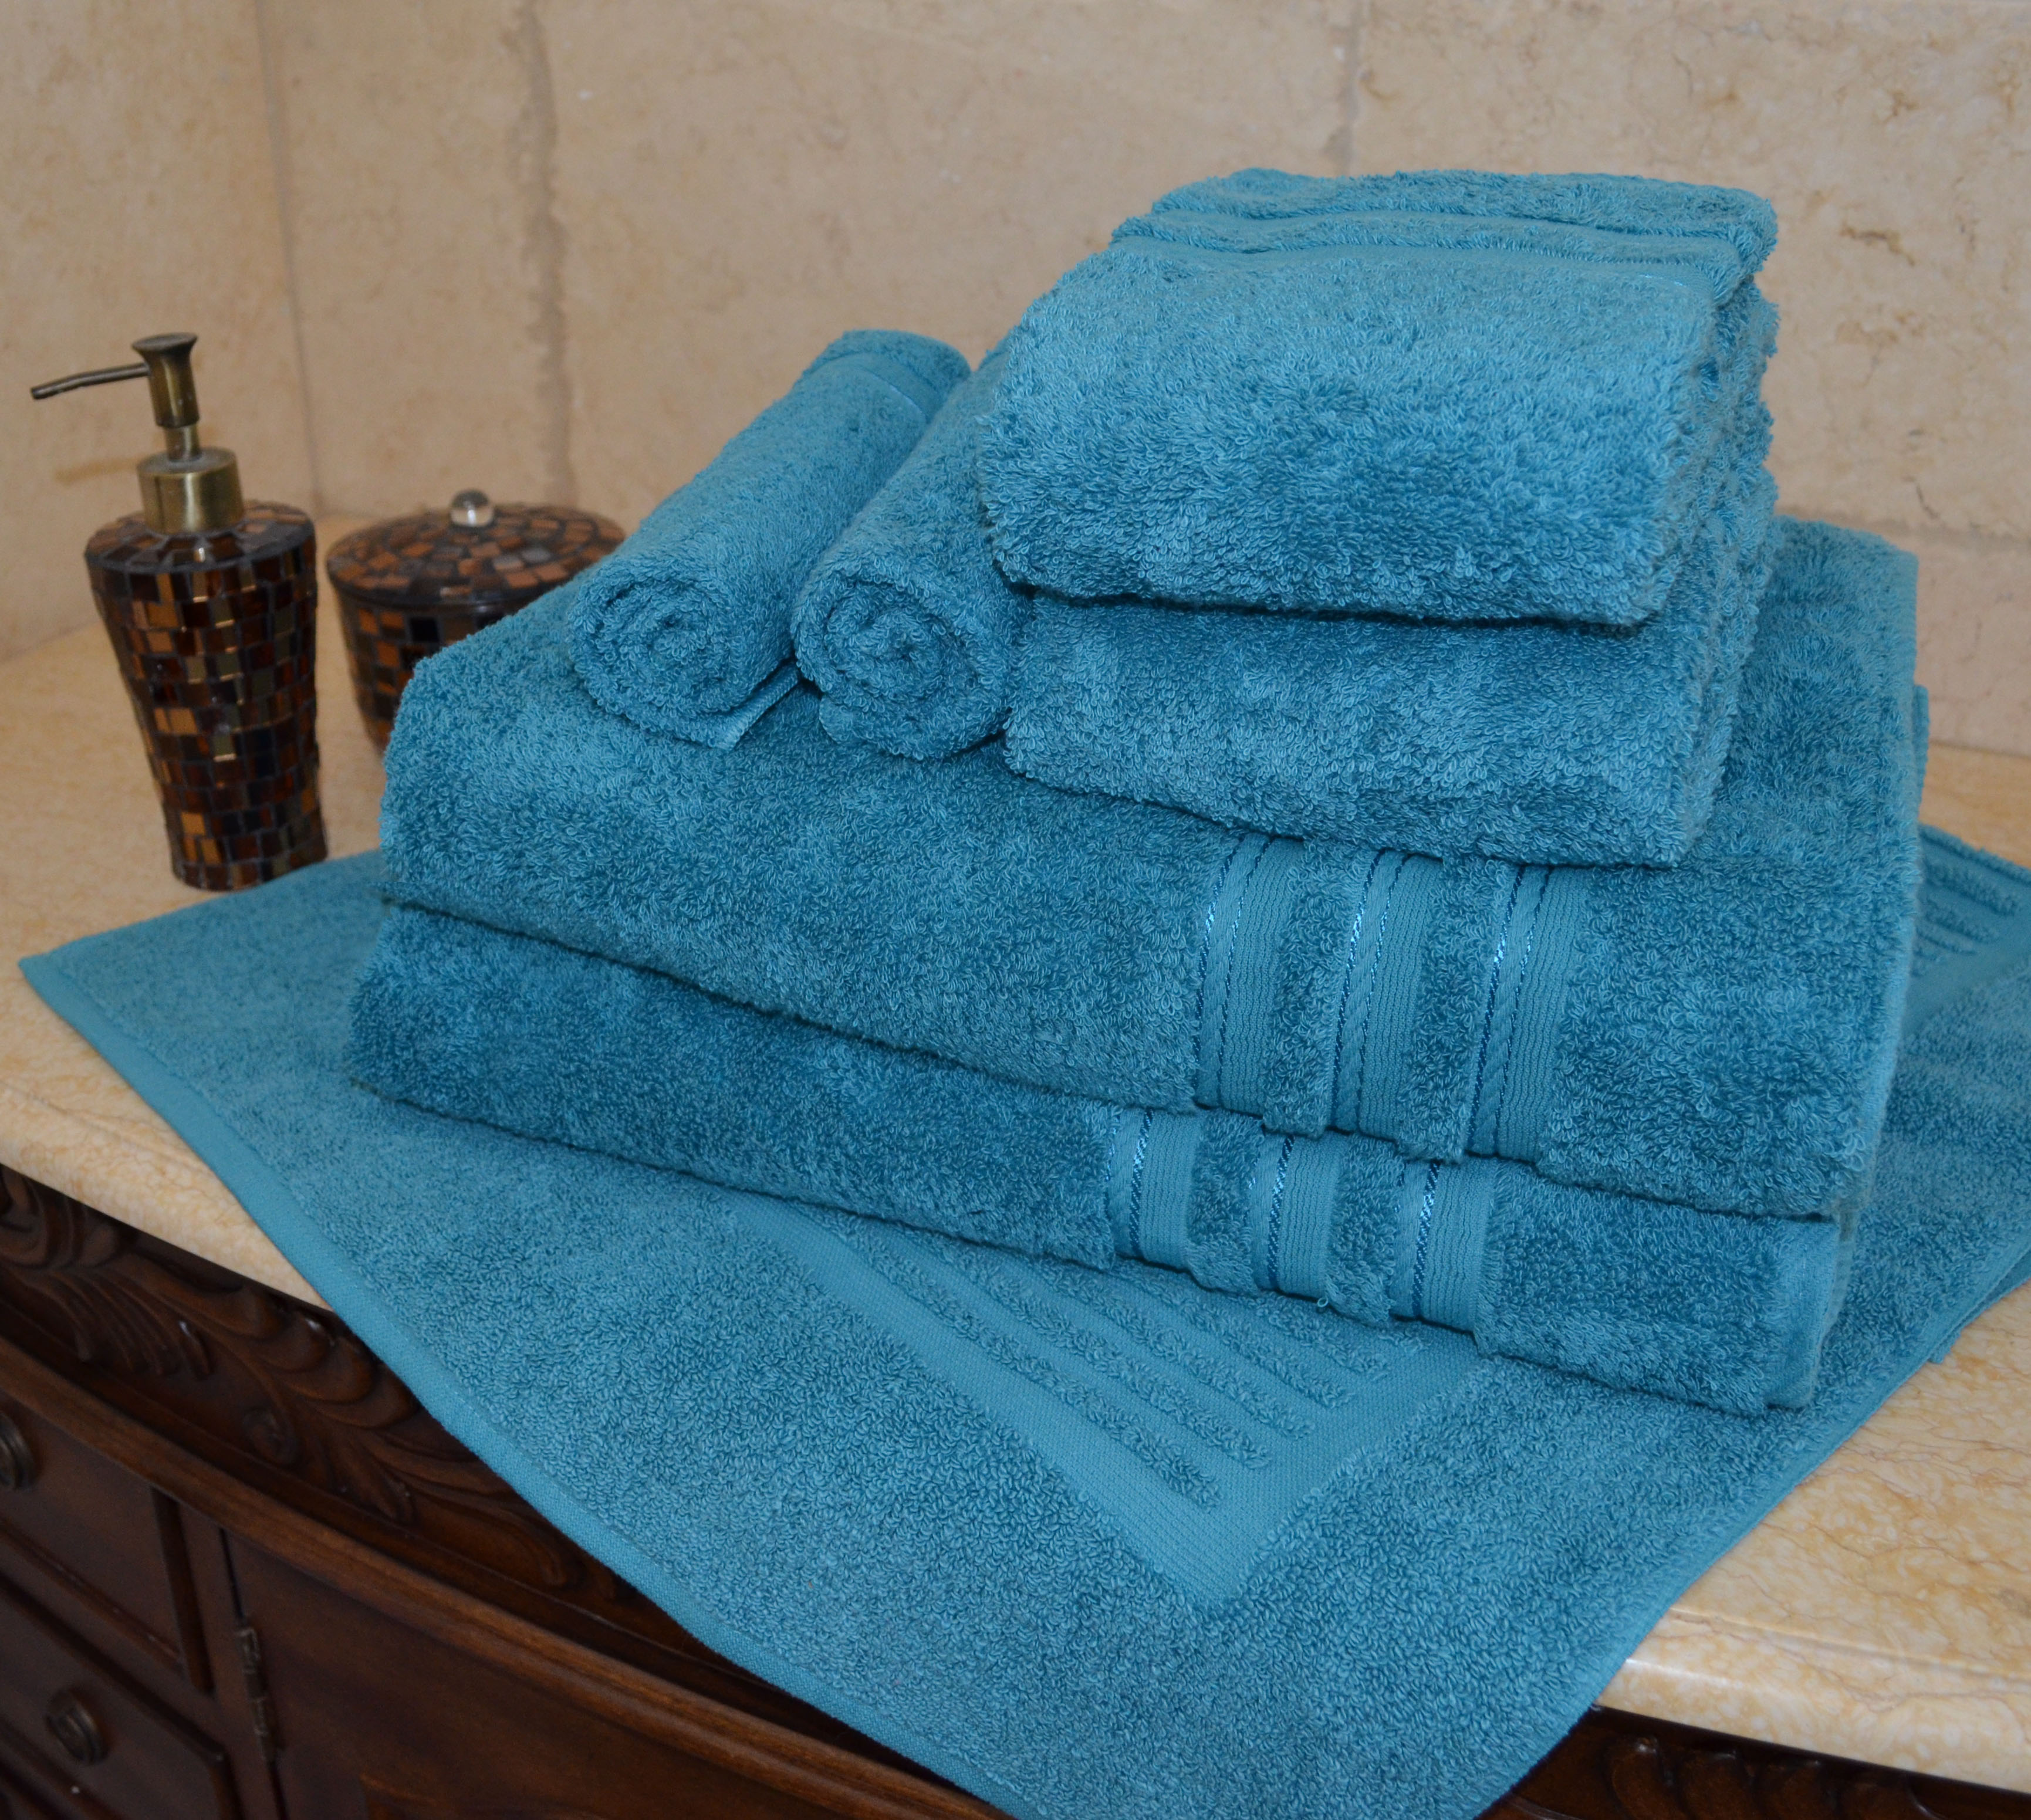 SPECIAL DISCOUNT ! LIMITED TIME TILL IT'S GONE - 7 PCS Luxurious 100% Egyptian Cotton Bath Towel Set by Luxury Egyptian